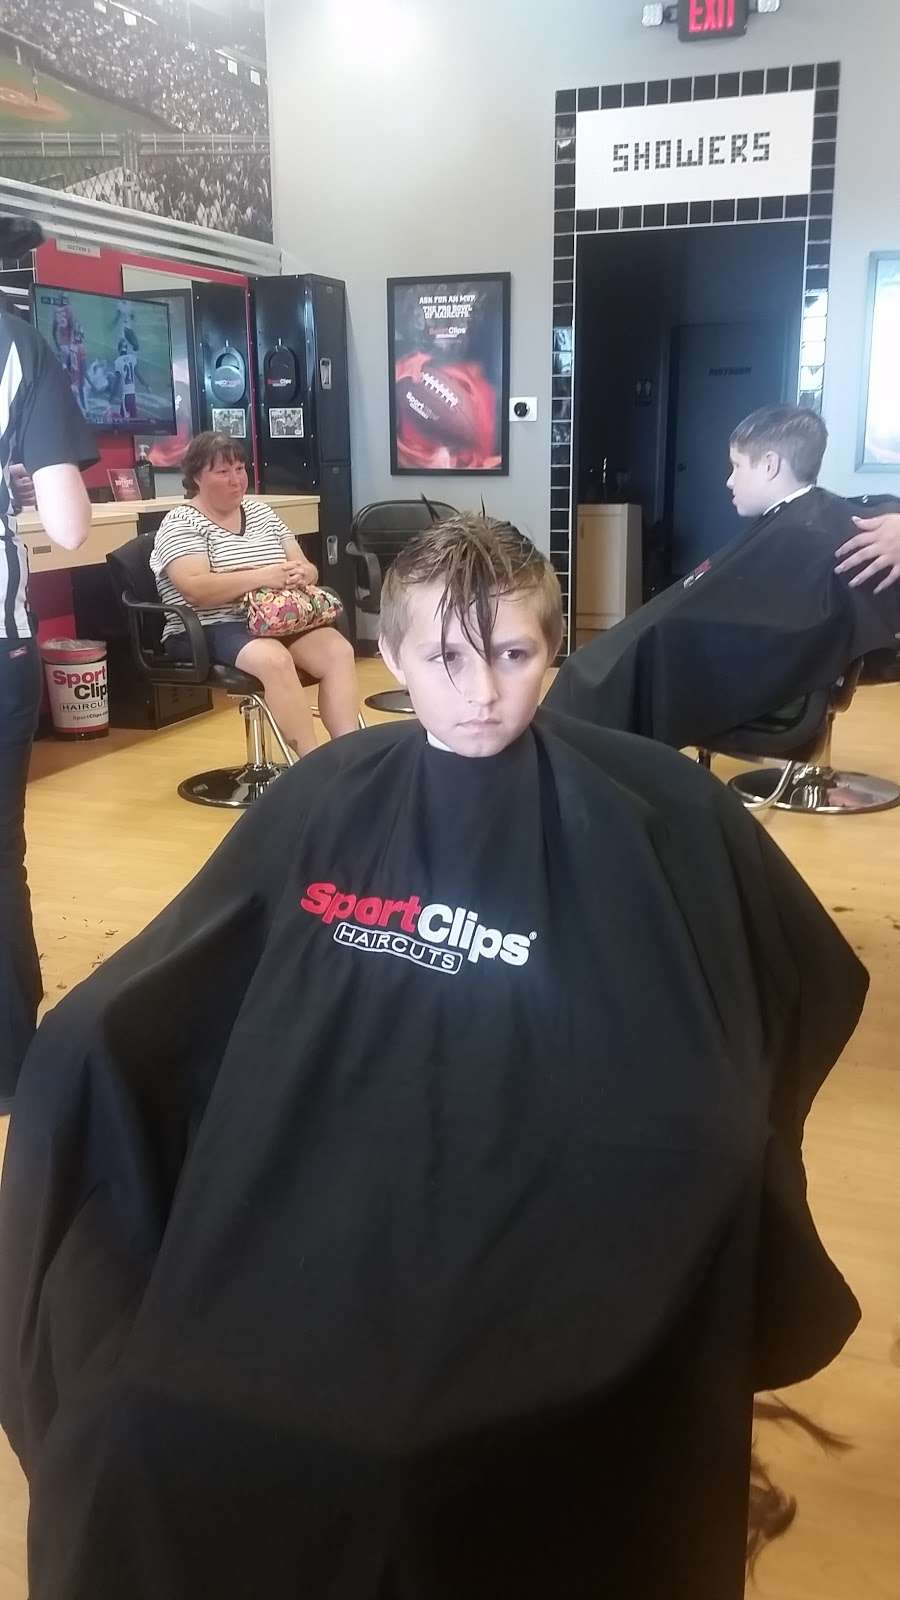 Sport Clips Haircuts of Alvin Center - hair care    Photo 6 of 7   Address: 252 N Bypass 35 Suite B, Alvin, TX 77511, USA   Phone: (281) 585-9600